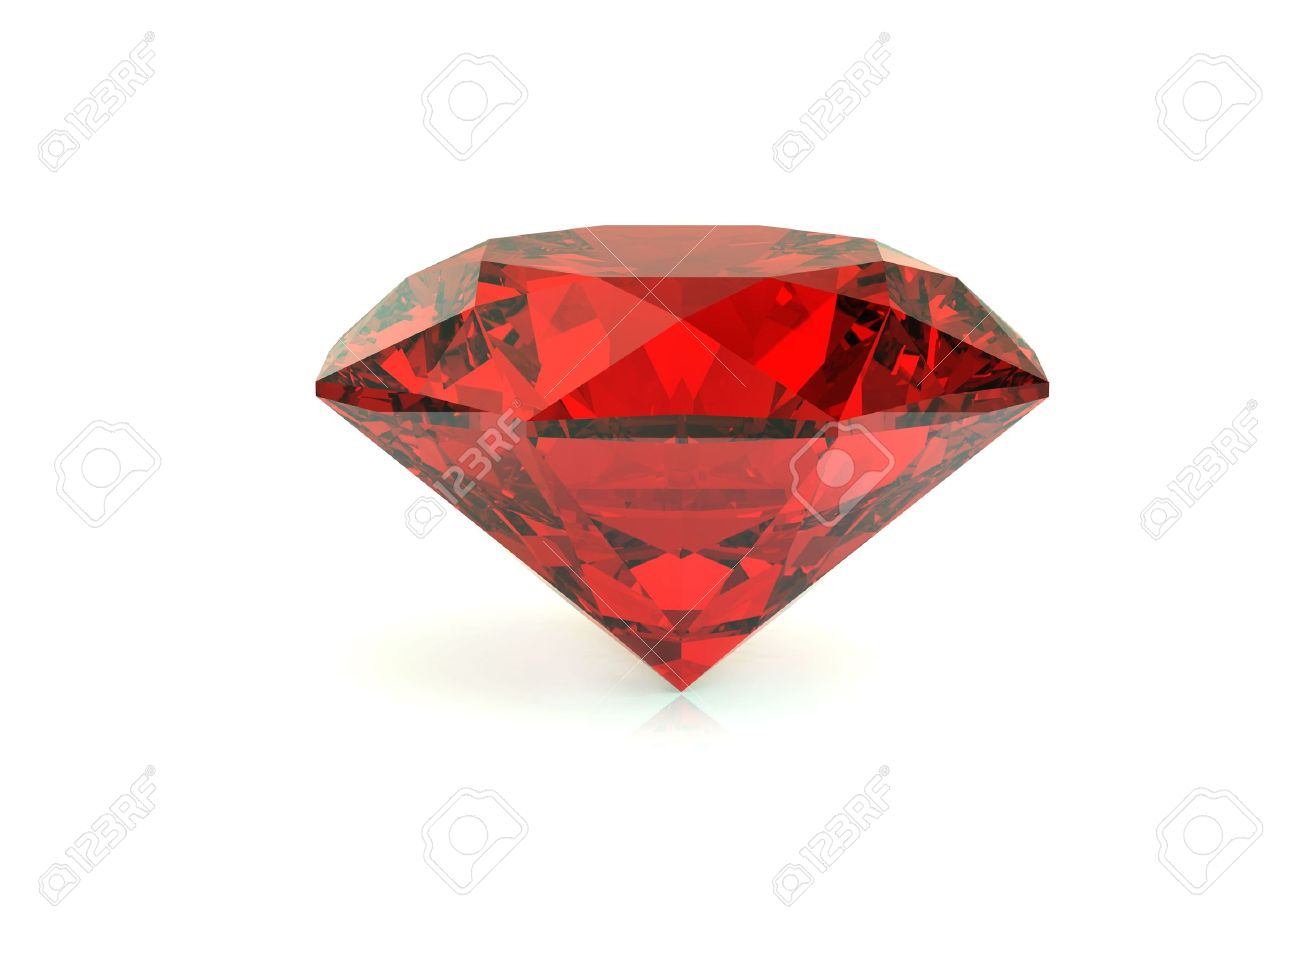 pendants wedding robira in created rose elegant red gemstone wholesale natural from gold party for quality jewelry women pendant ruby item diamond top necklace